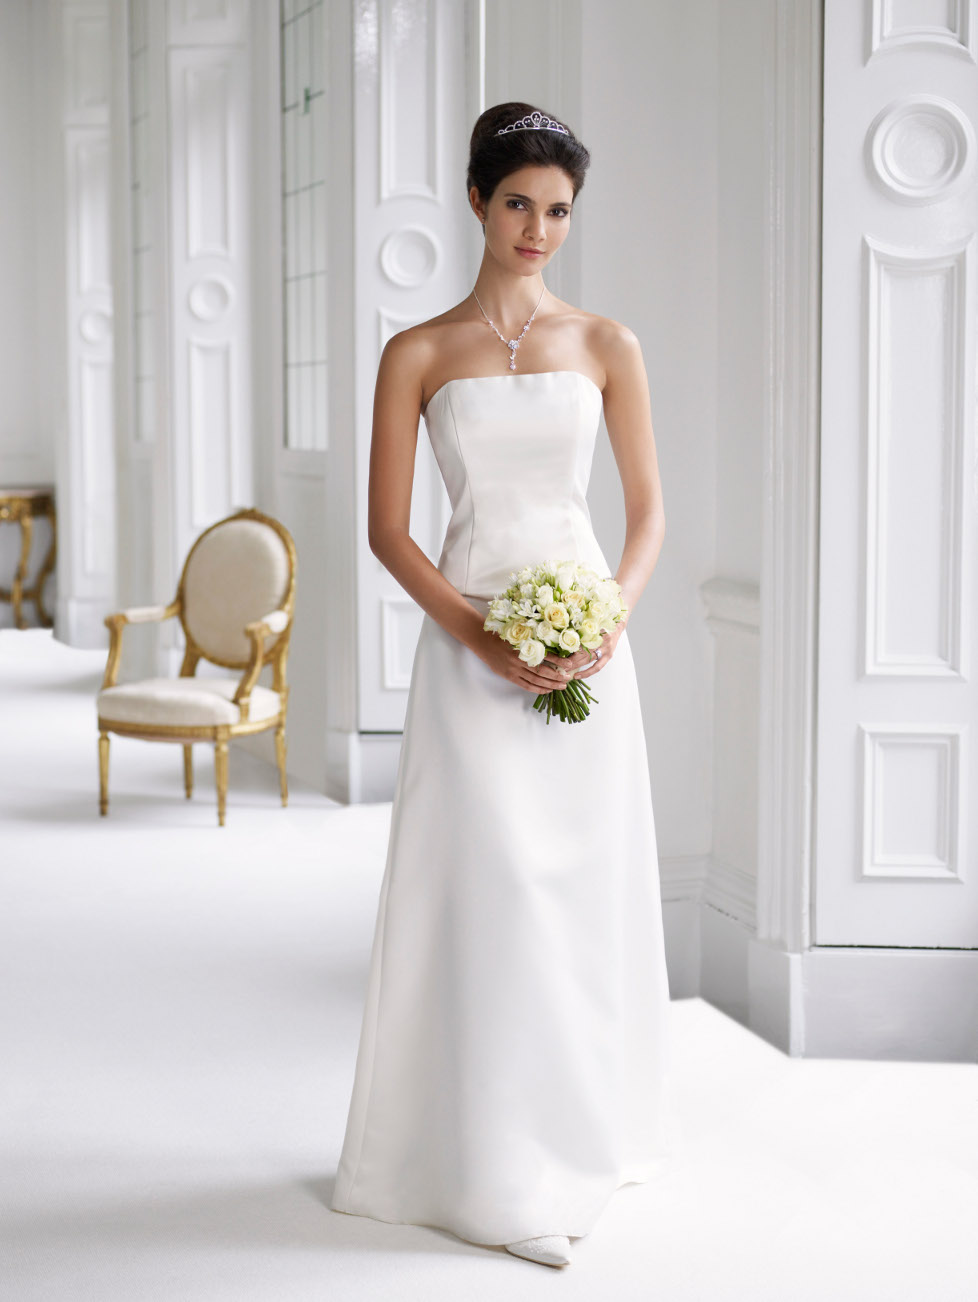 Plain elegant white wedding dress designs wedding dress for Top wedding dress designs